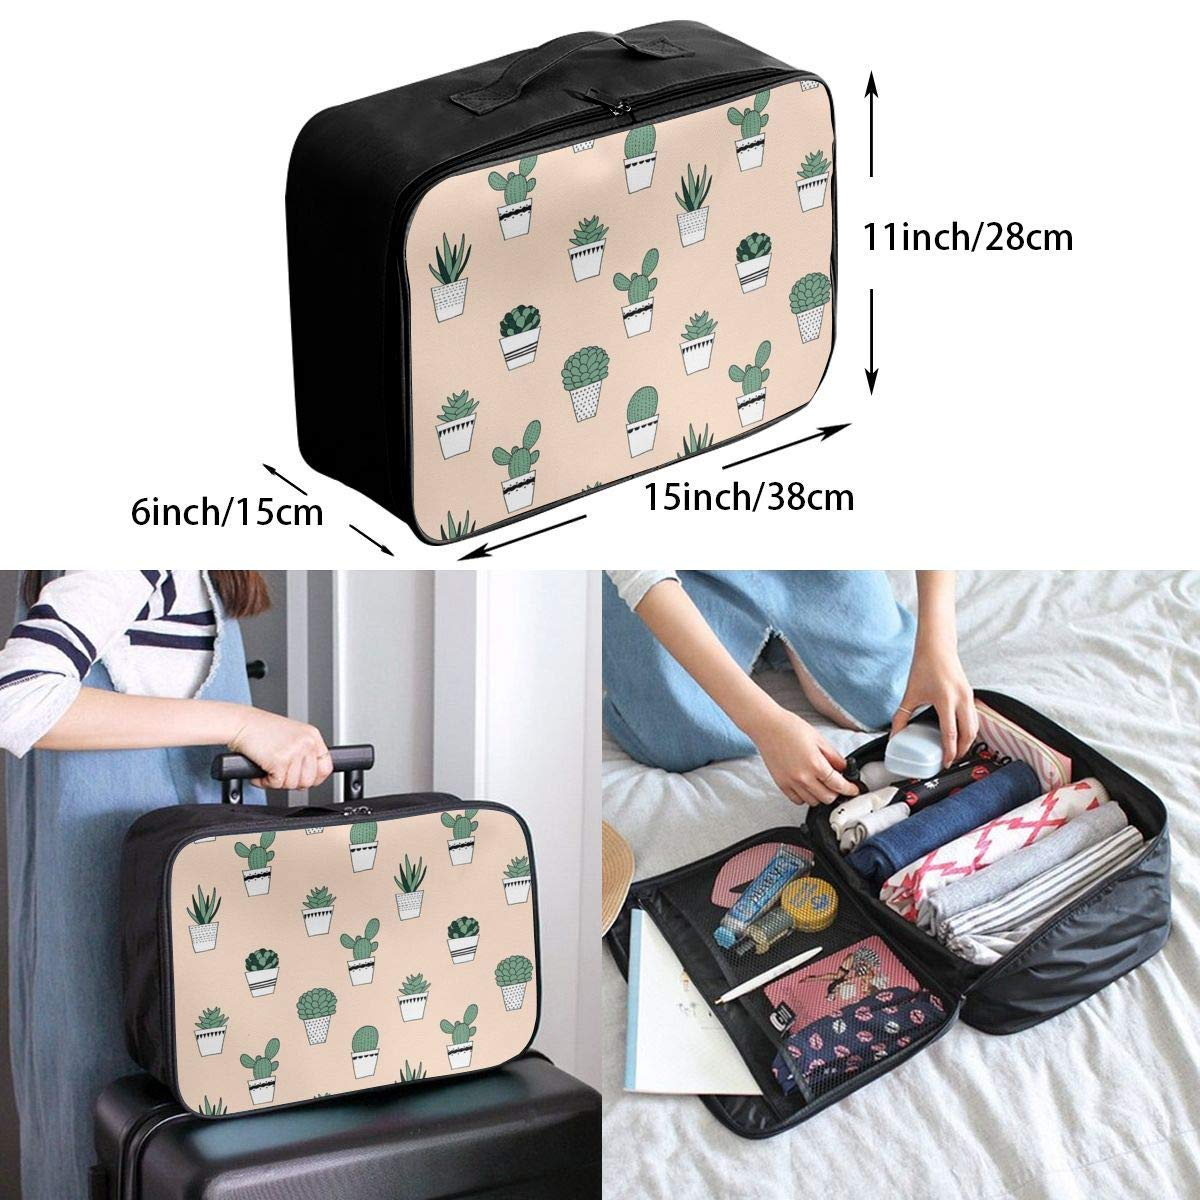 JTRVW Luggage Bags for Travel Travel Duffel Bag Waterproof Fashion Lightweight Large Capacity Portable Duffel Bag for Men /& Women Potted Succulents